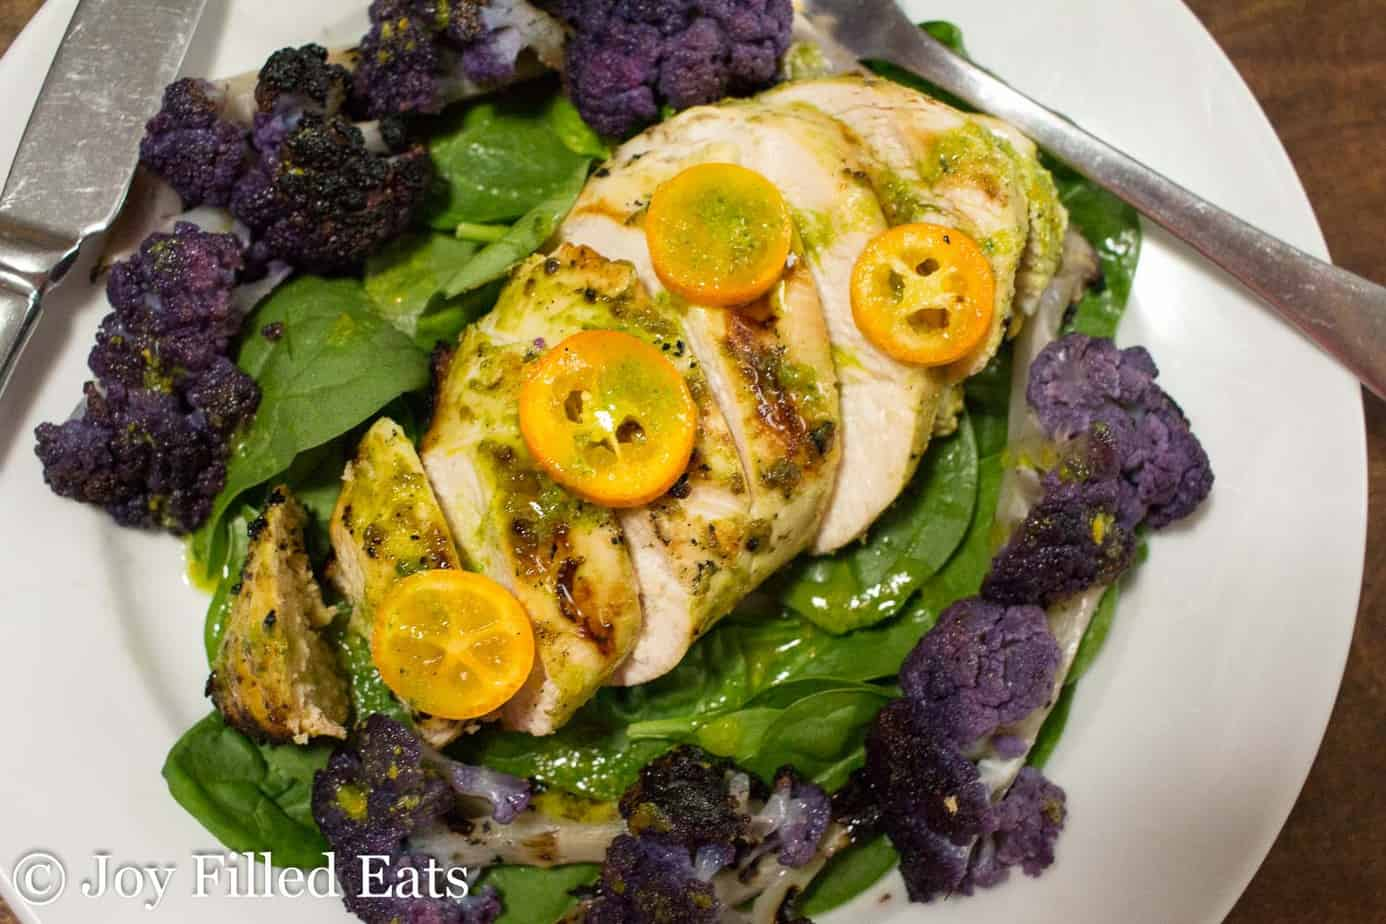 citrus basil grilled chicken salad on a plate from above